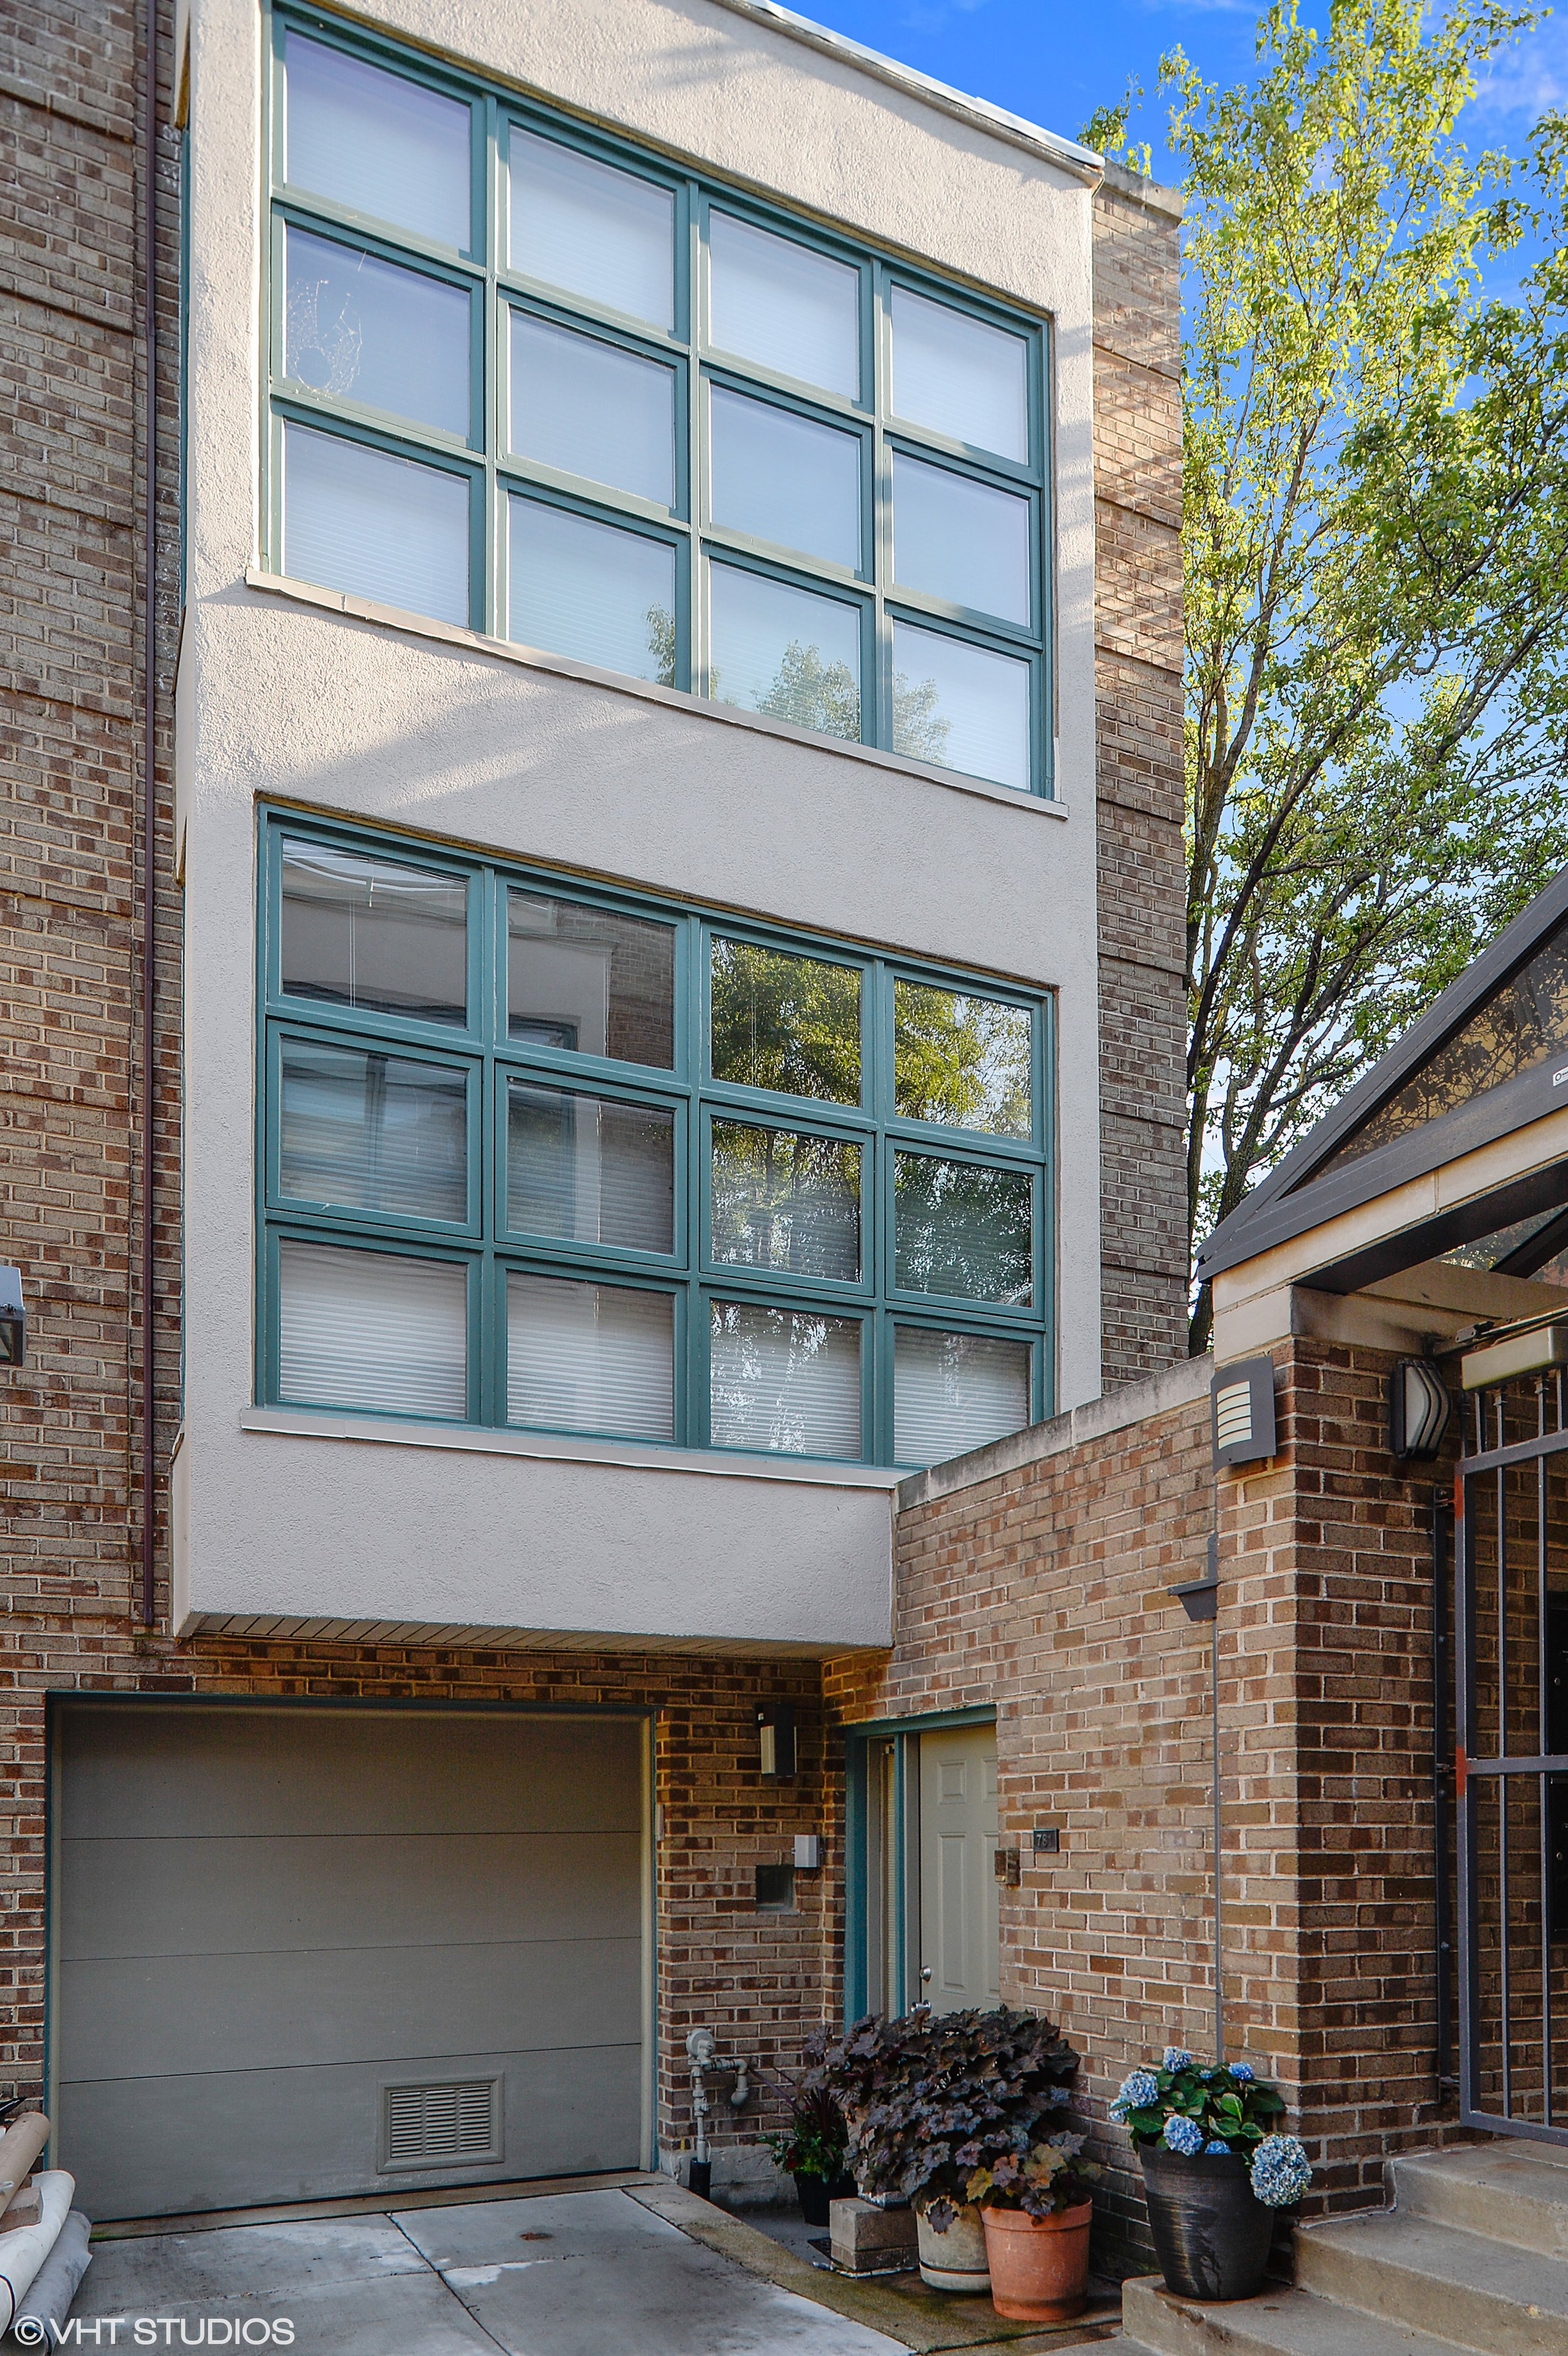 01_781WestMelroseSt_57_FrontView_HiRes.jpg